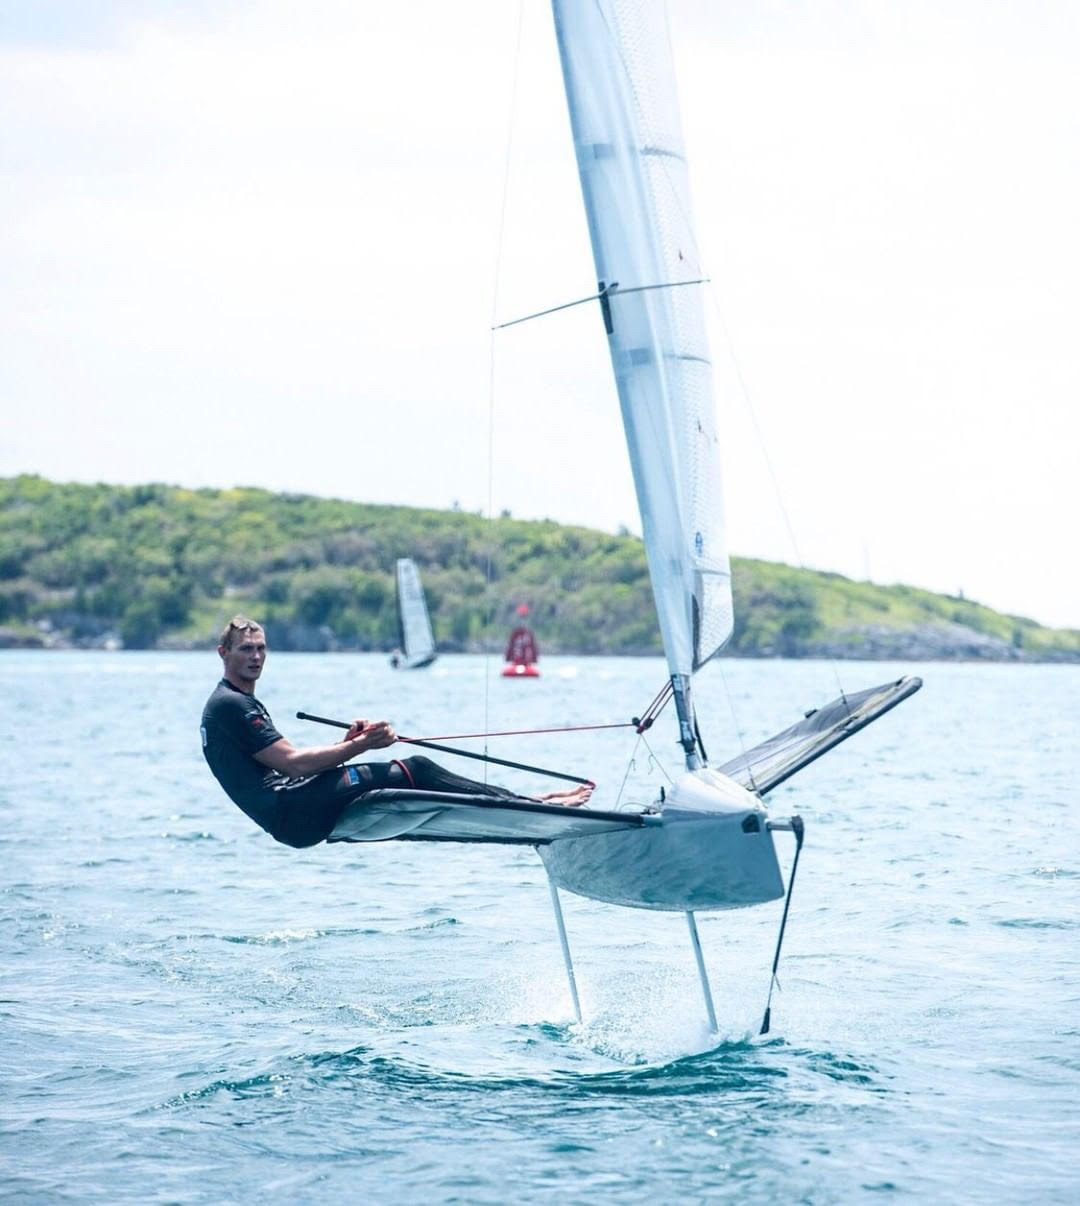 Kyle Langford sailing his moth